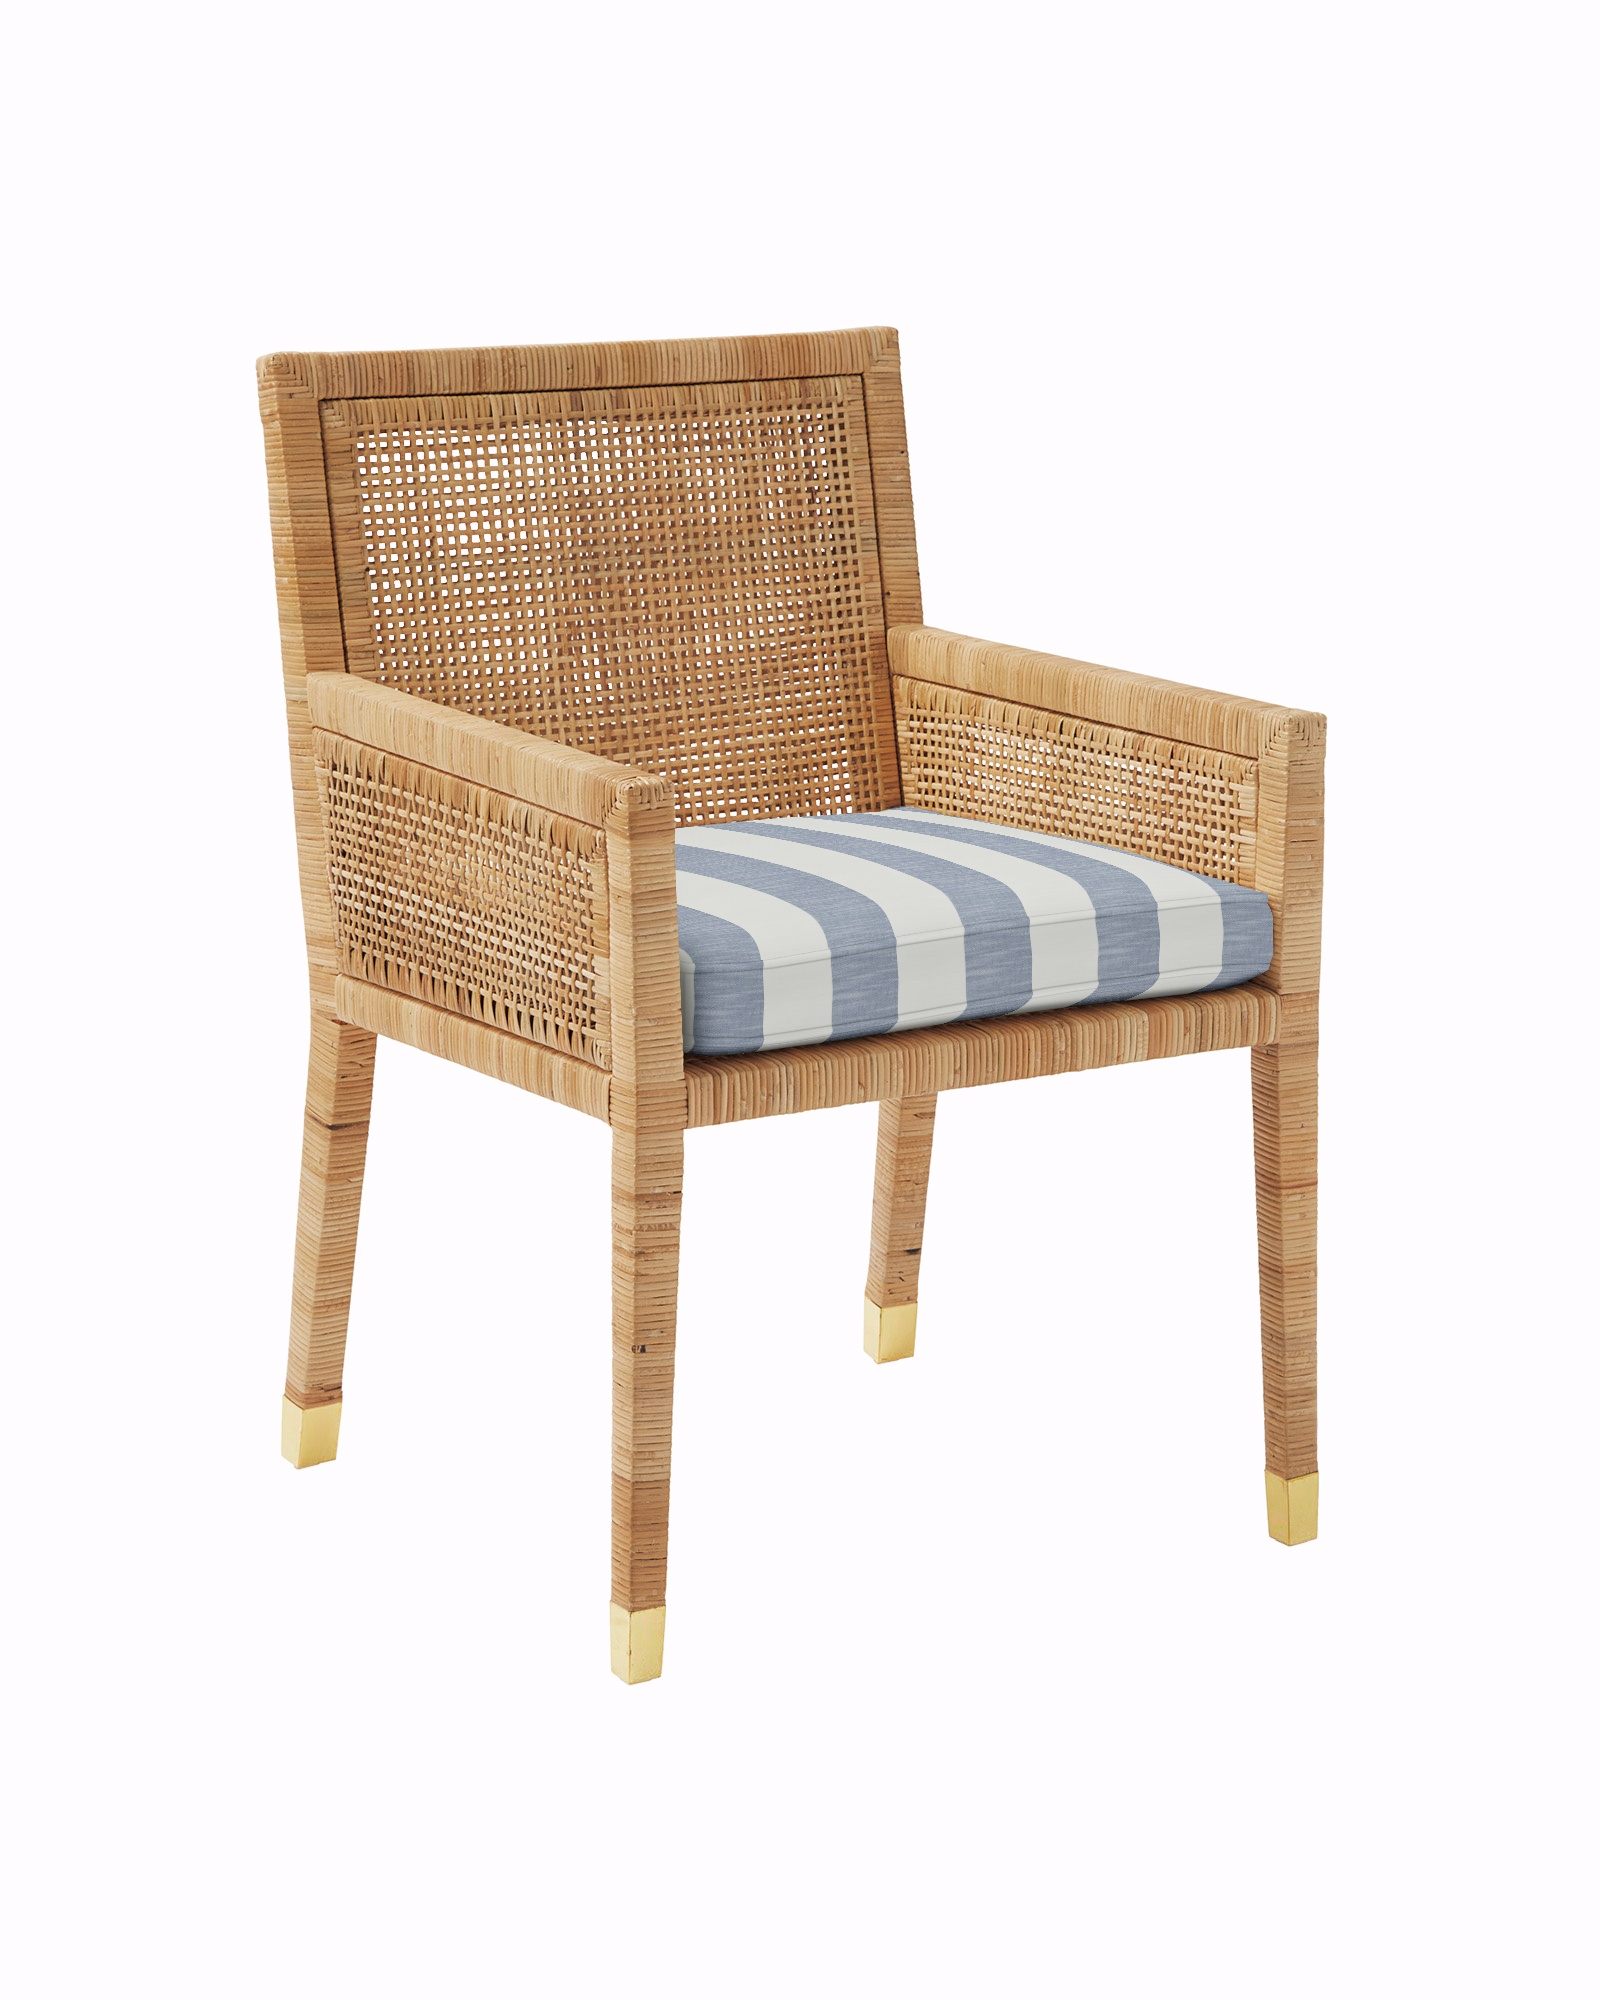 Cushion Cover for Balboa Armchair - Natural, Beach Stripe Navy